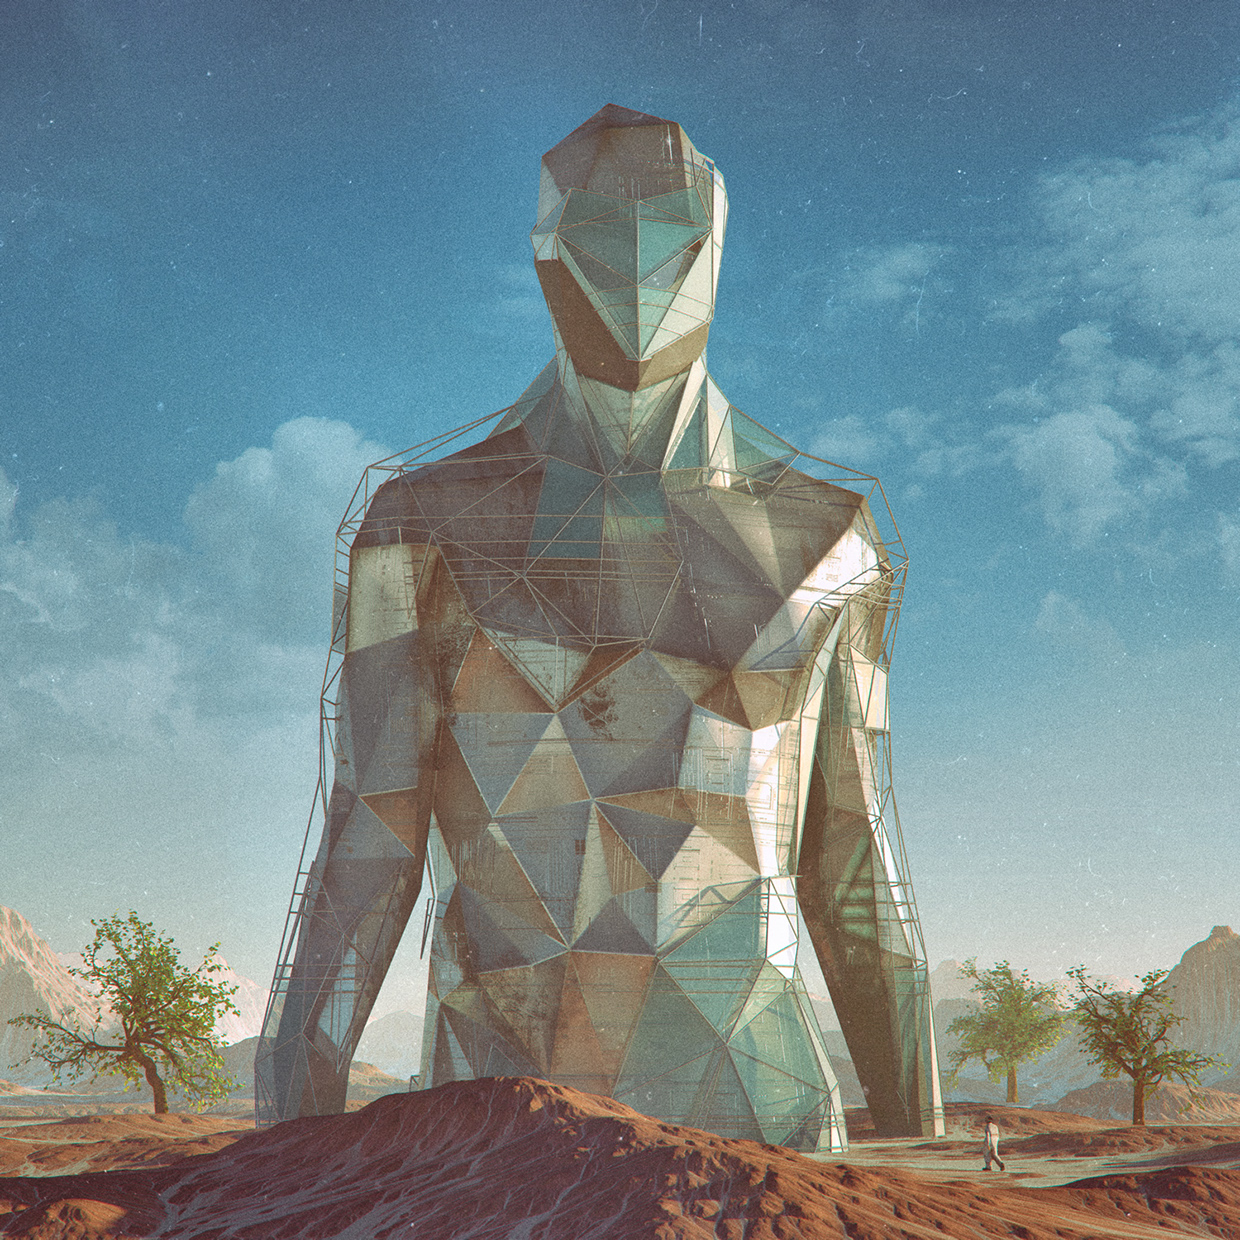 L'art digital 3D de Mike Wikerman aka Beeple